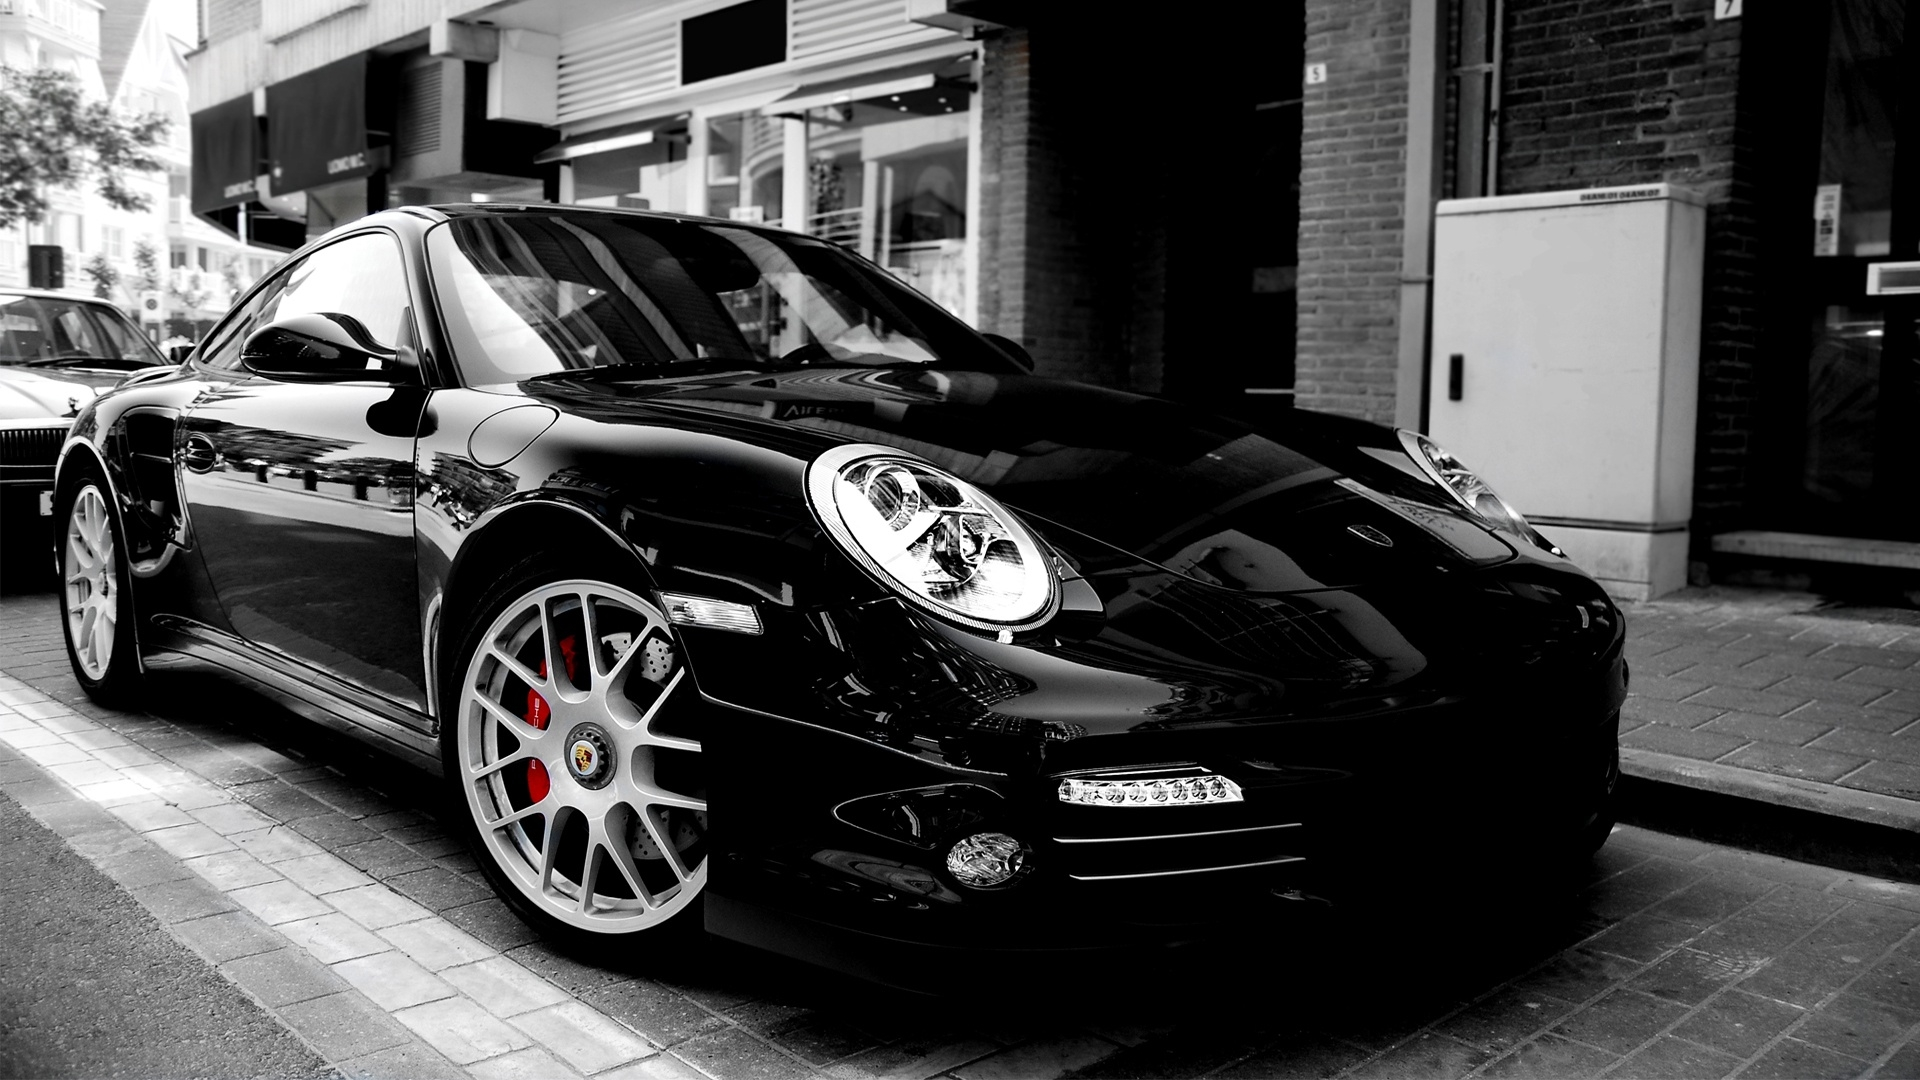 Porsche Hd Wallpapers 1080p: Porsche HD Wallpapers 1080p